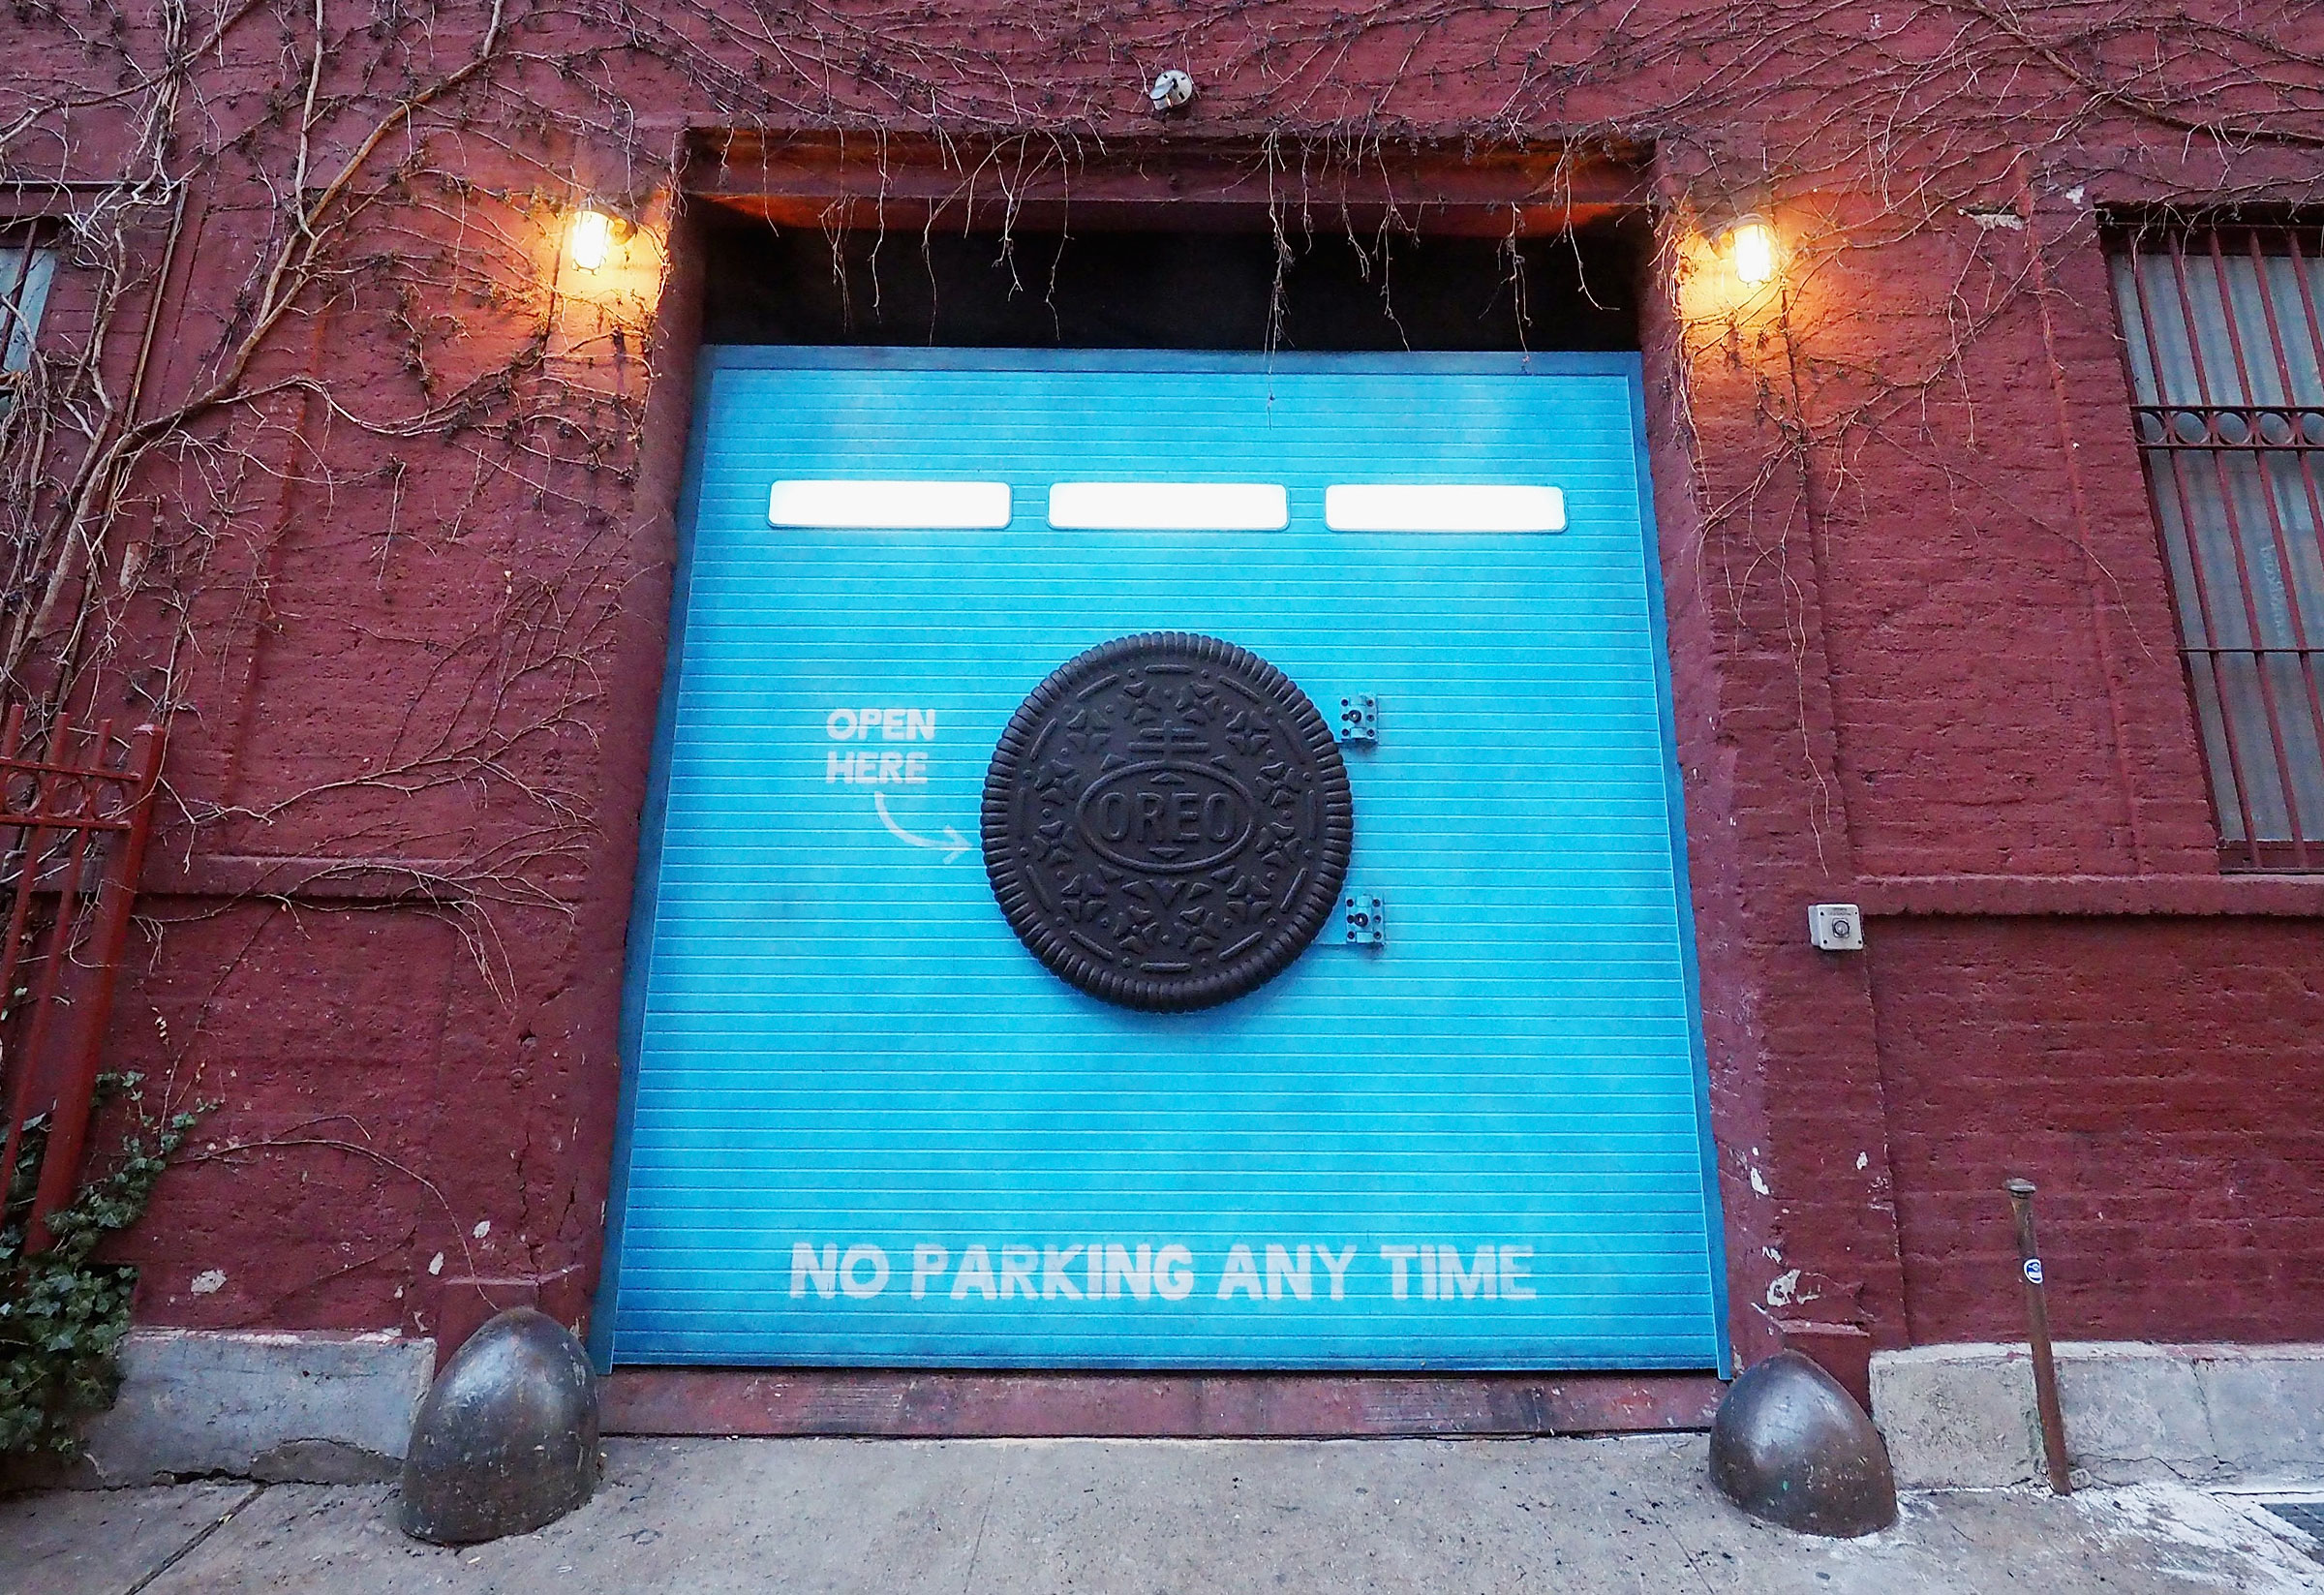 Calendar Mysteries May Magic : Here s what behind the mysterious oreo door that popped